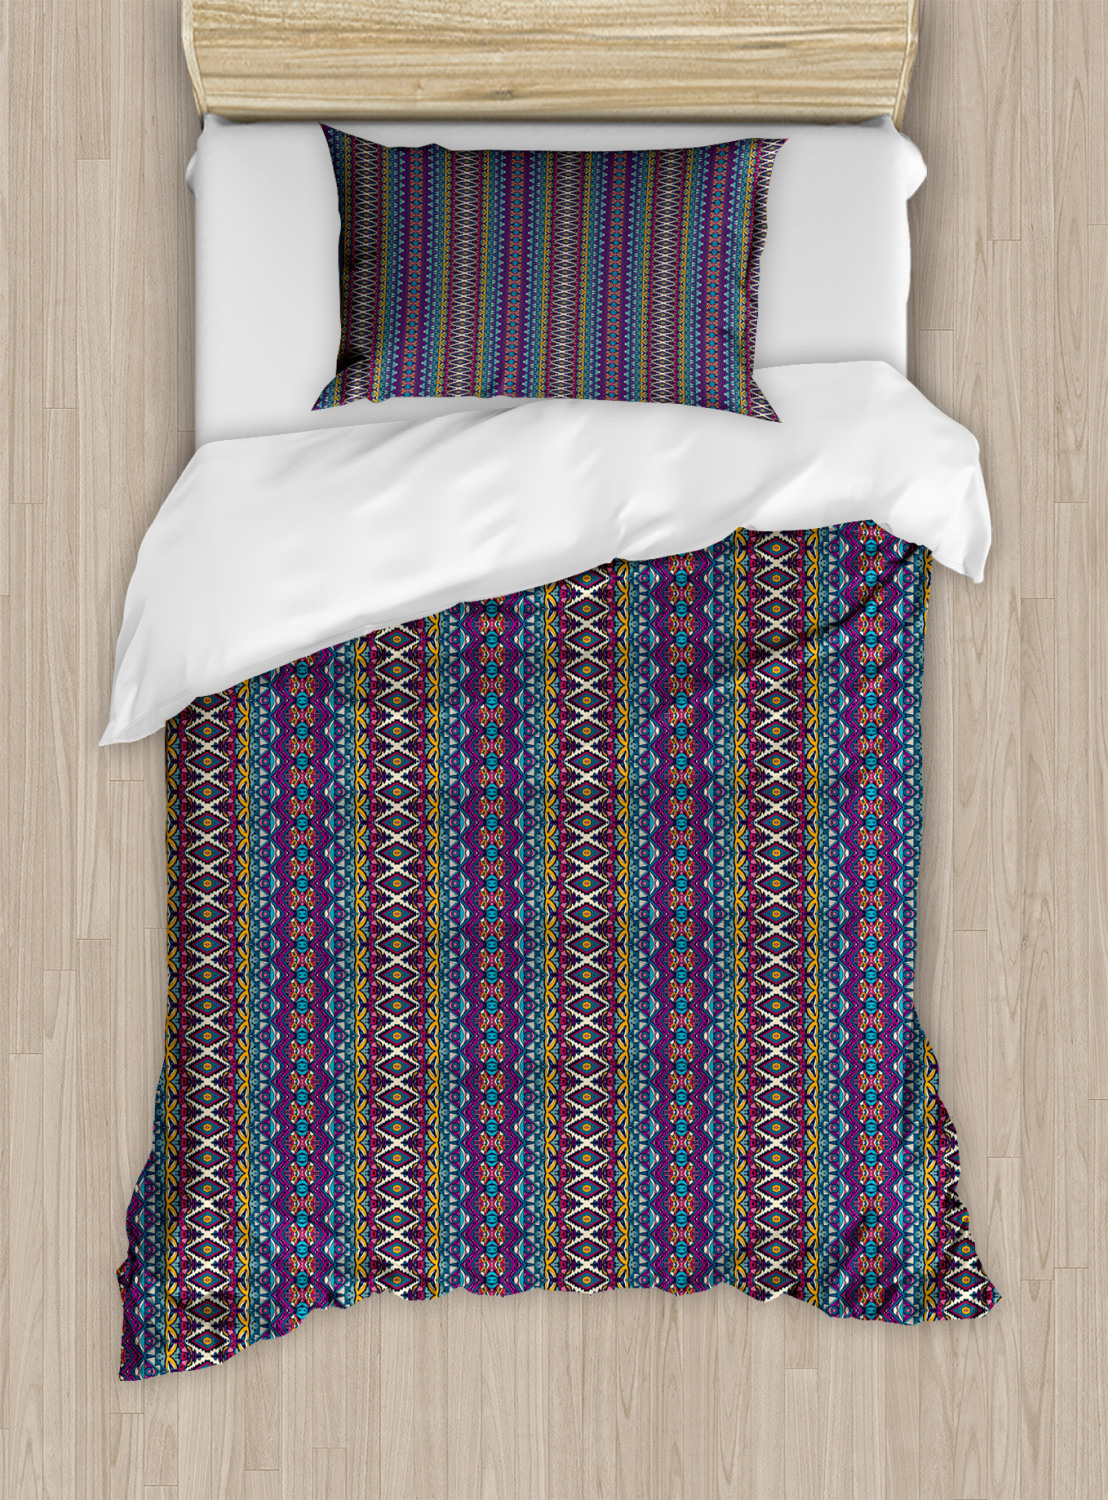 Timeless-Oriental-Duvet-Cover-Set-Twin-Queen-King-Sizes-with-Pillow-Shams thumbnail 88